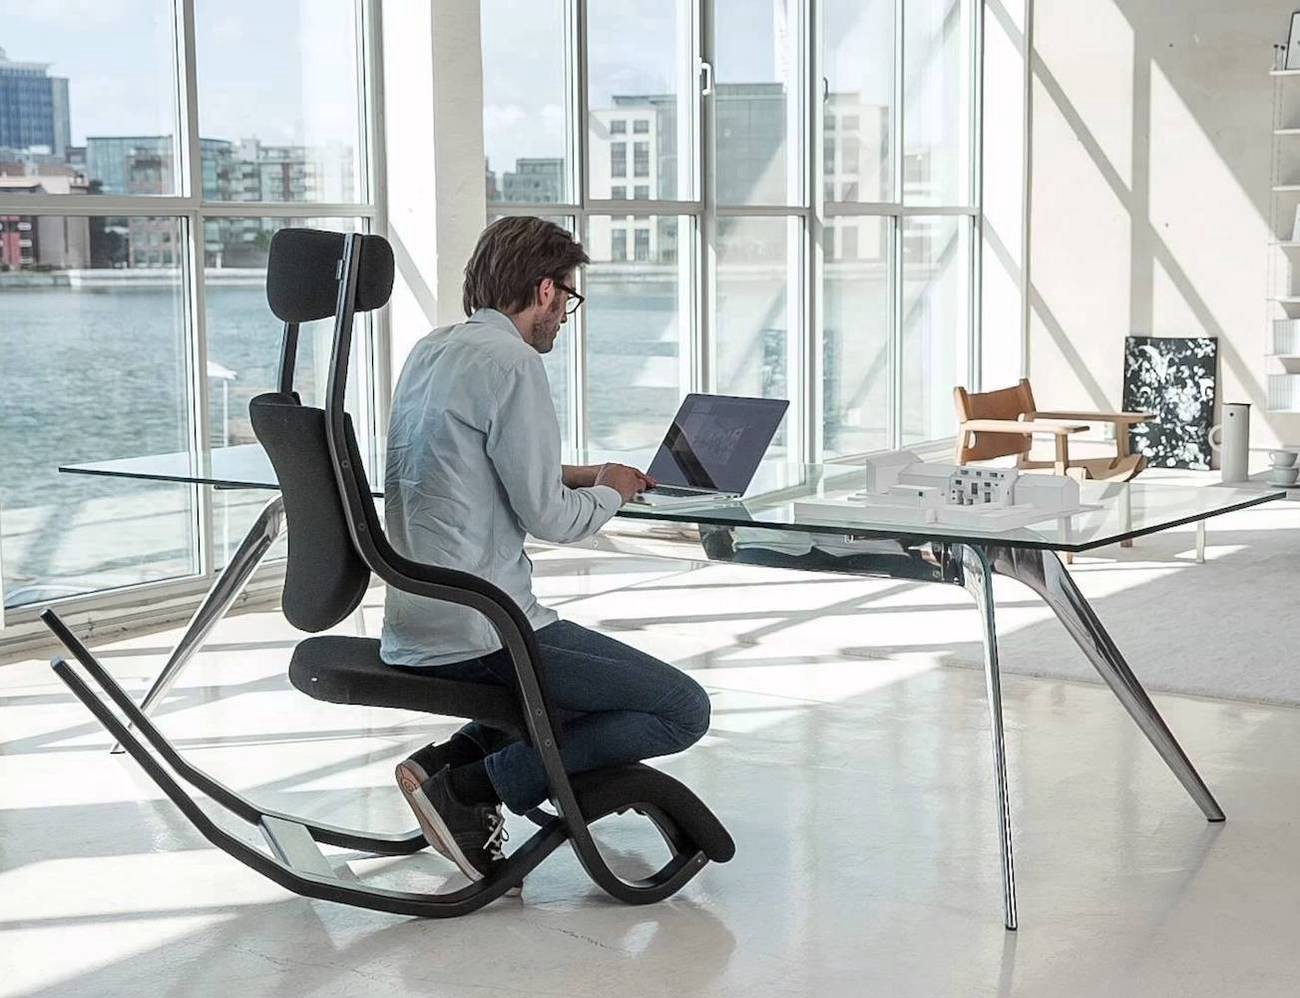 This totally unique design gives this modern chair a plethora of opportunities. You can work play and relax all in the same place. & 10 Comfy Work Chairs for a Productive Work Life u2013 Gadget Flow u2013 Medium